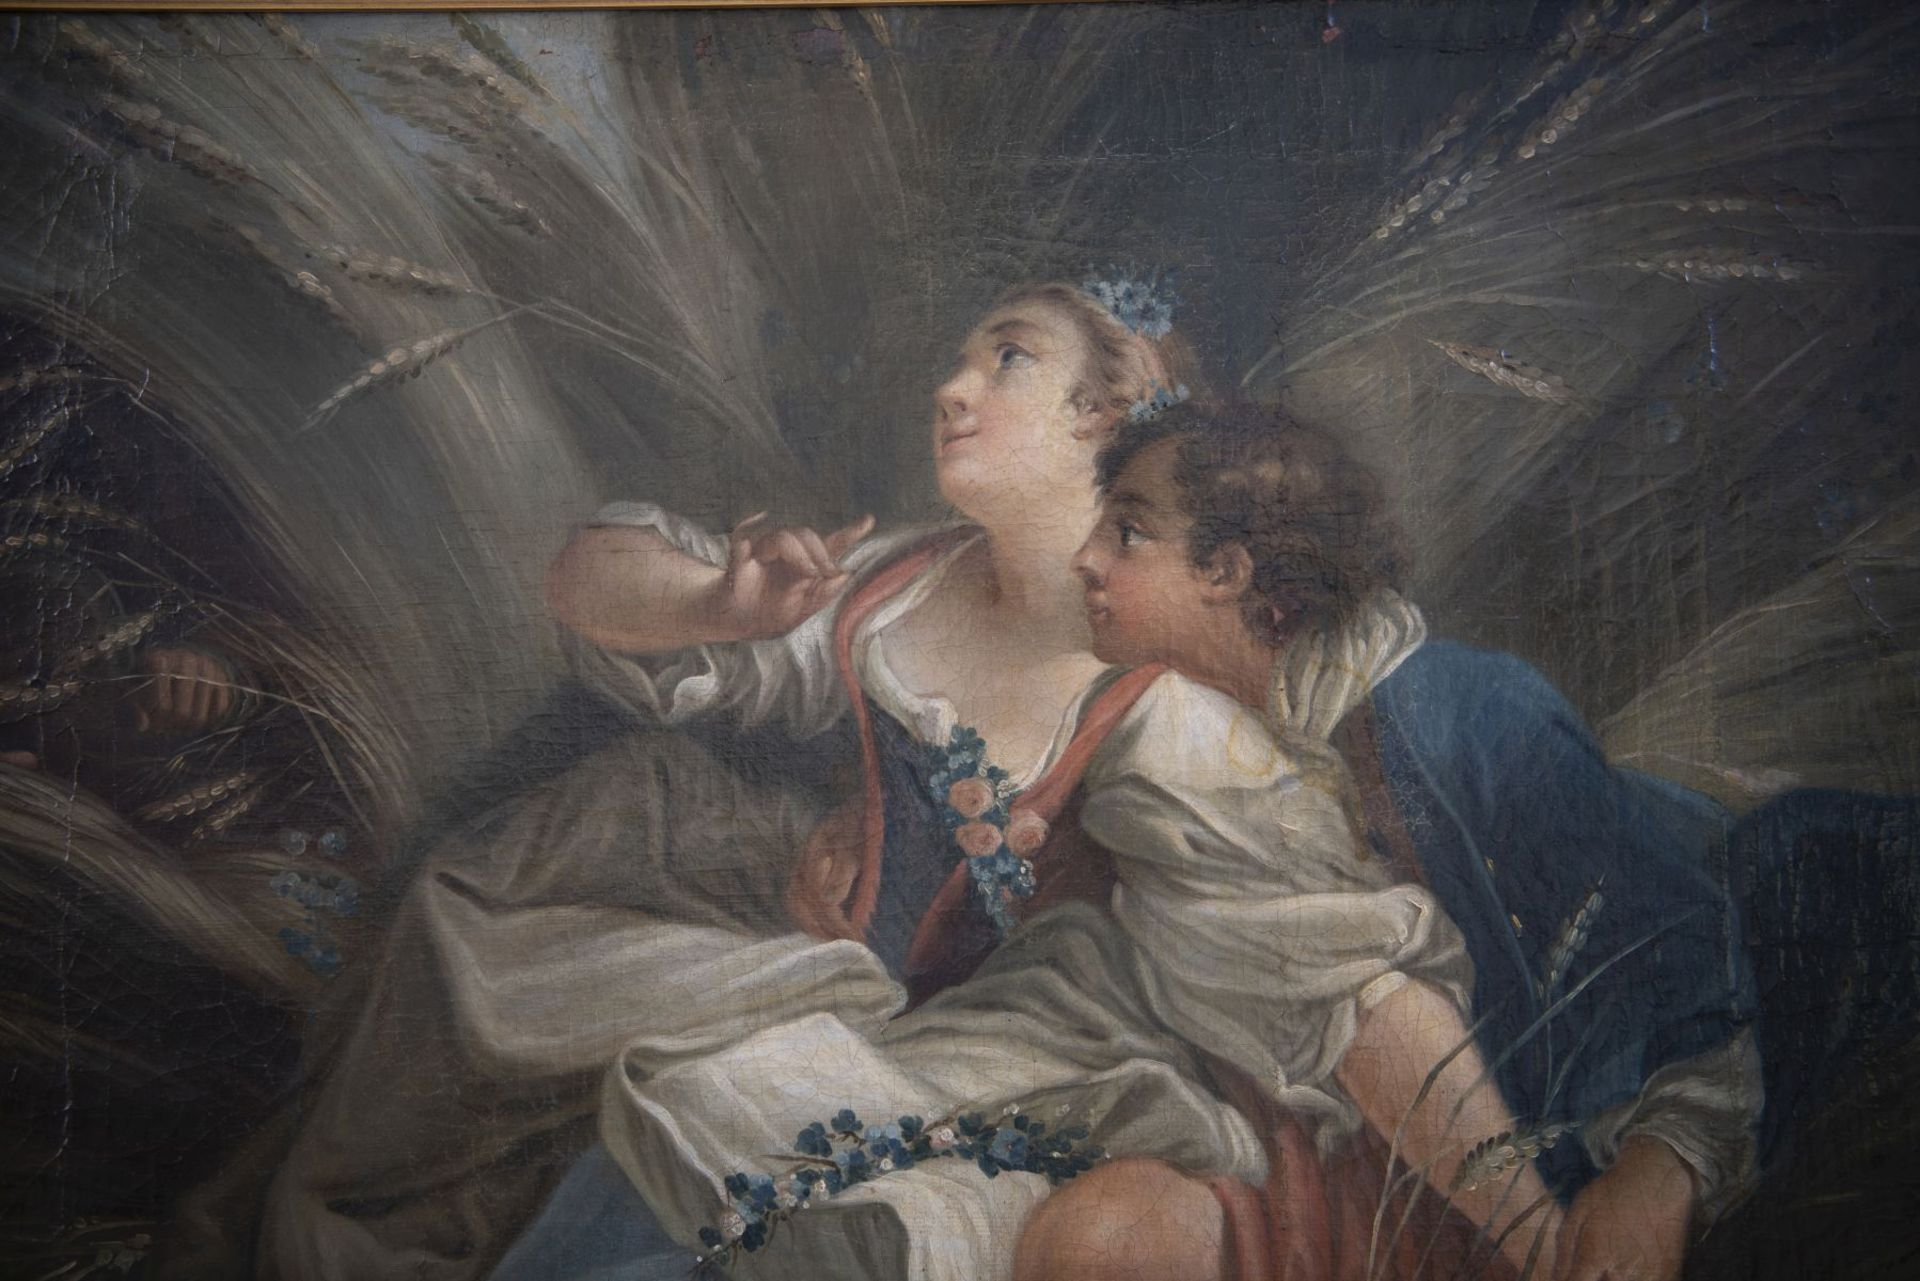 """France 18th century """"Caught lovers"""" - Image 2 of 7"""